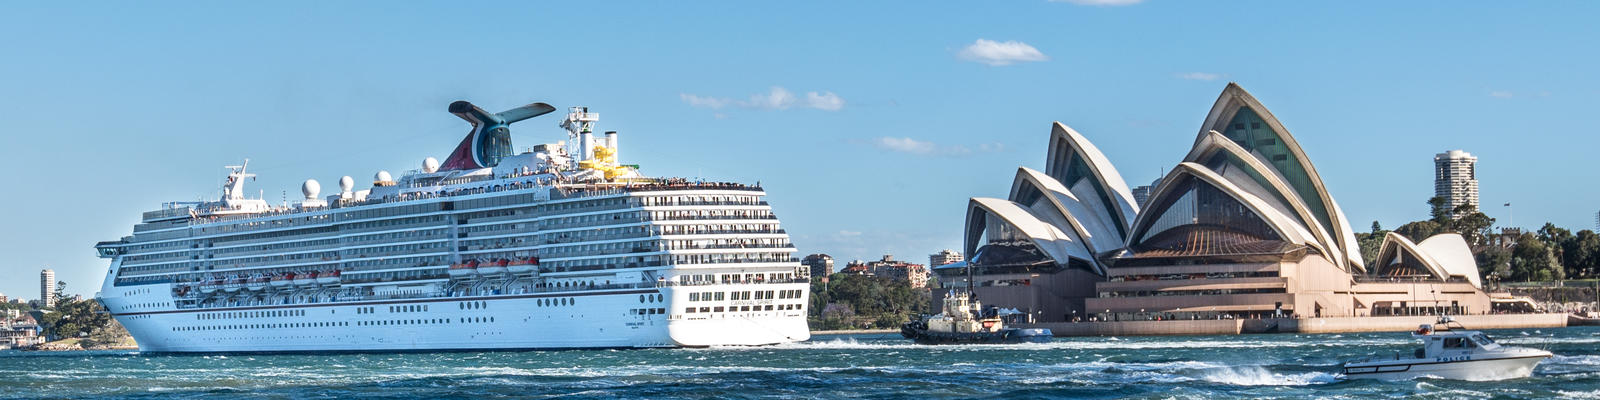 Countries That Require Visas for a Cruise (Photo: JT888/Shutterstock.com)